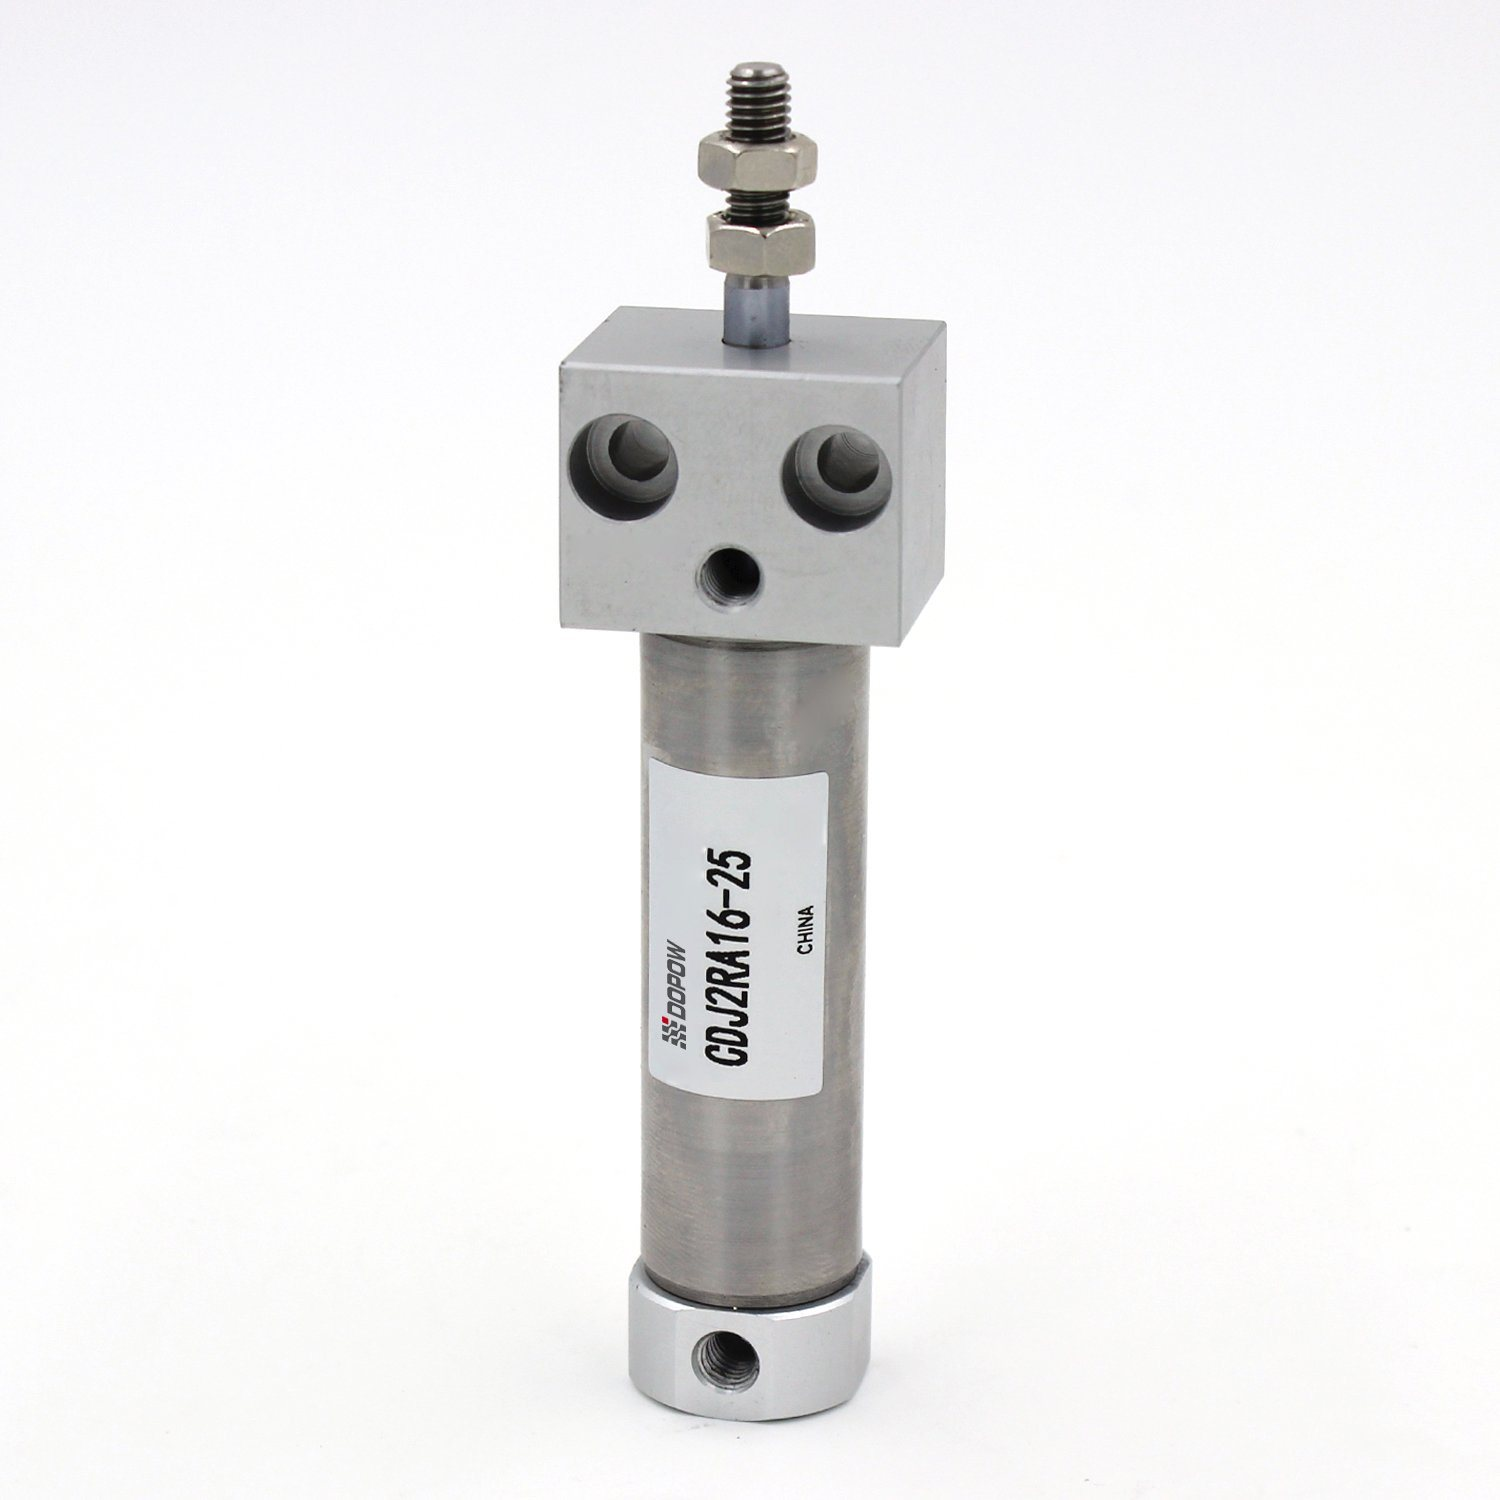 Dopow CDJ2ra16-25 Stainless Mini Air Cylinder